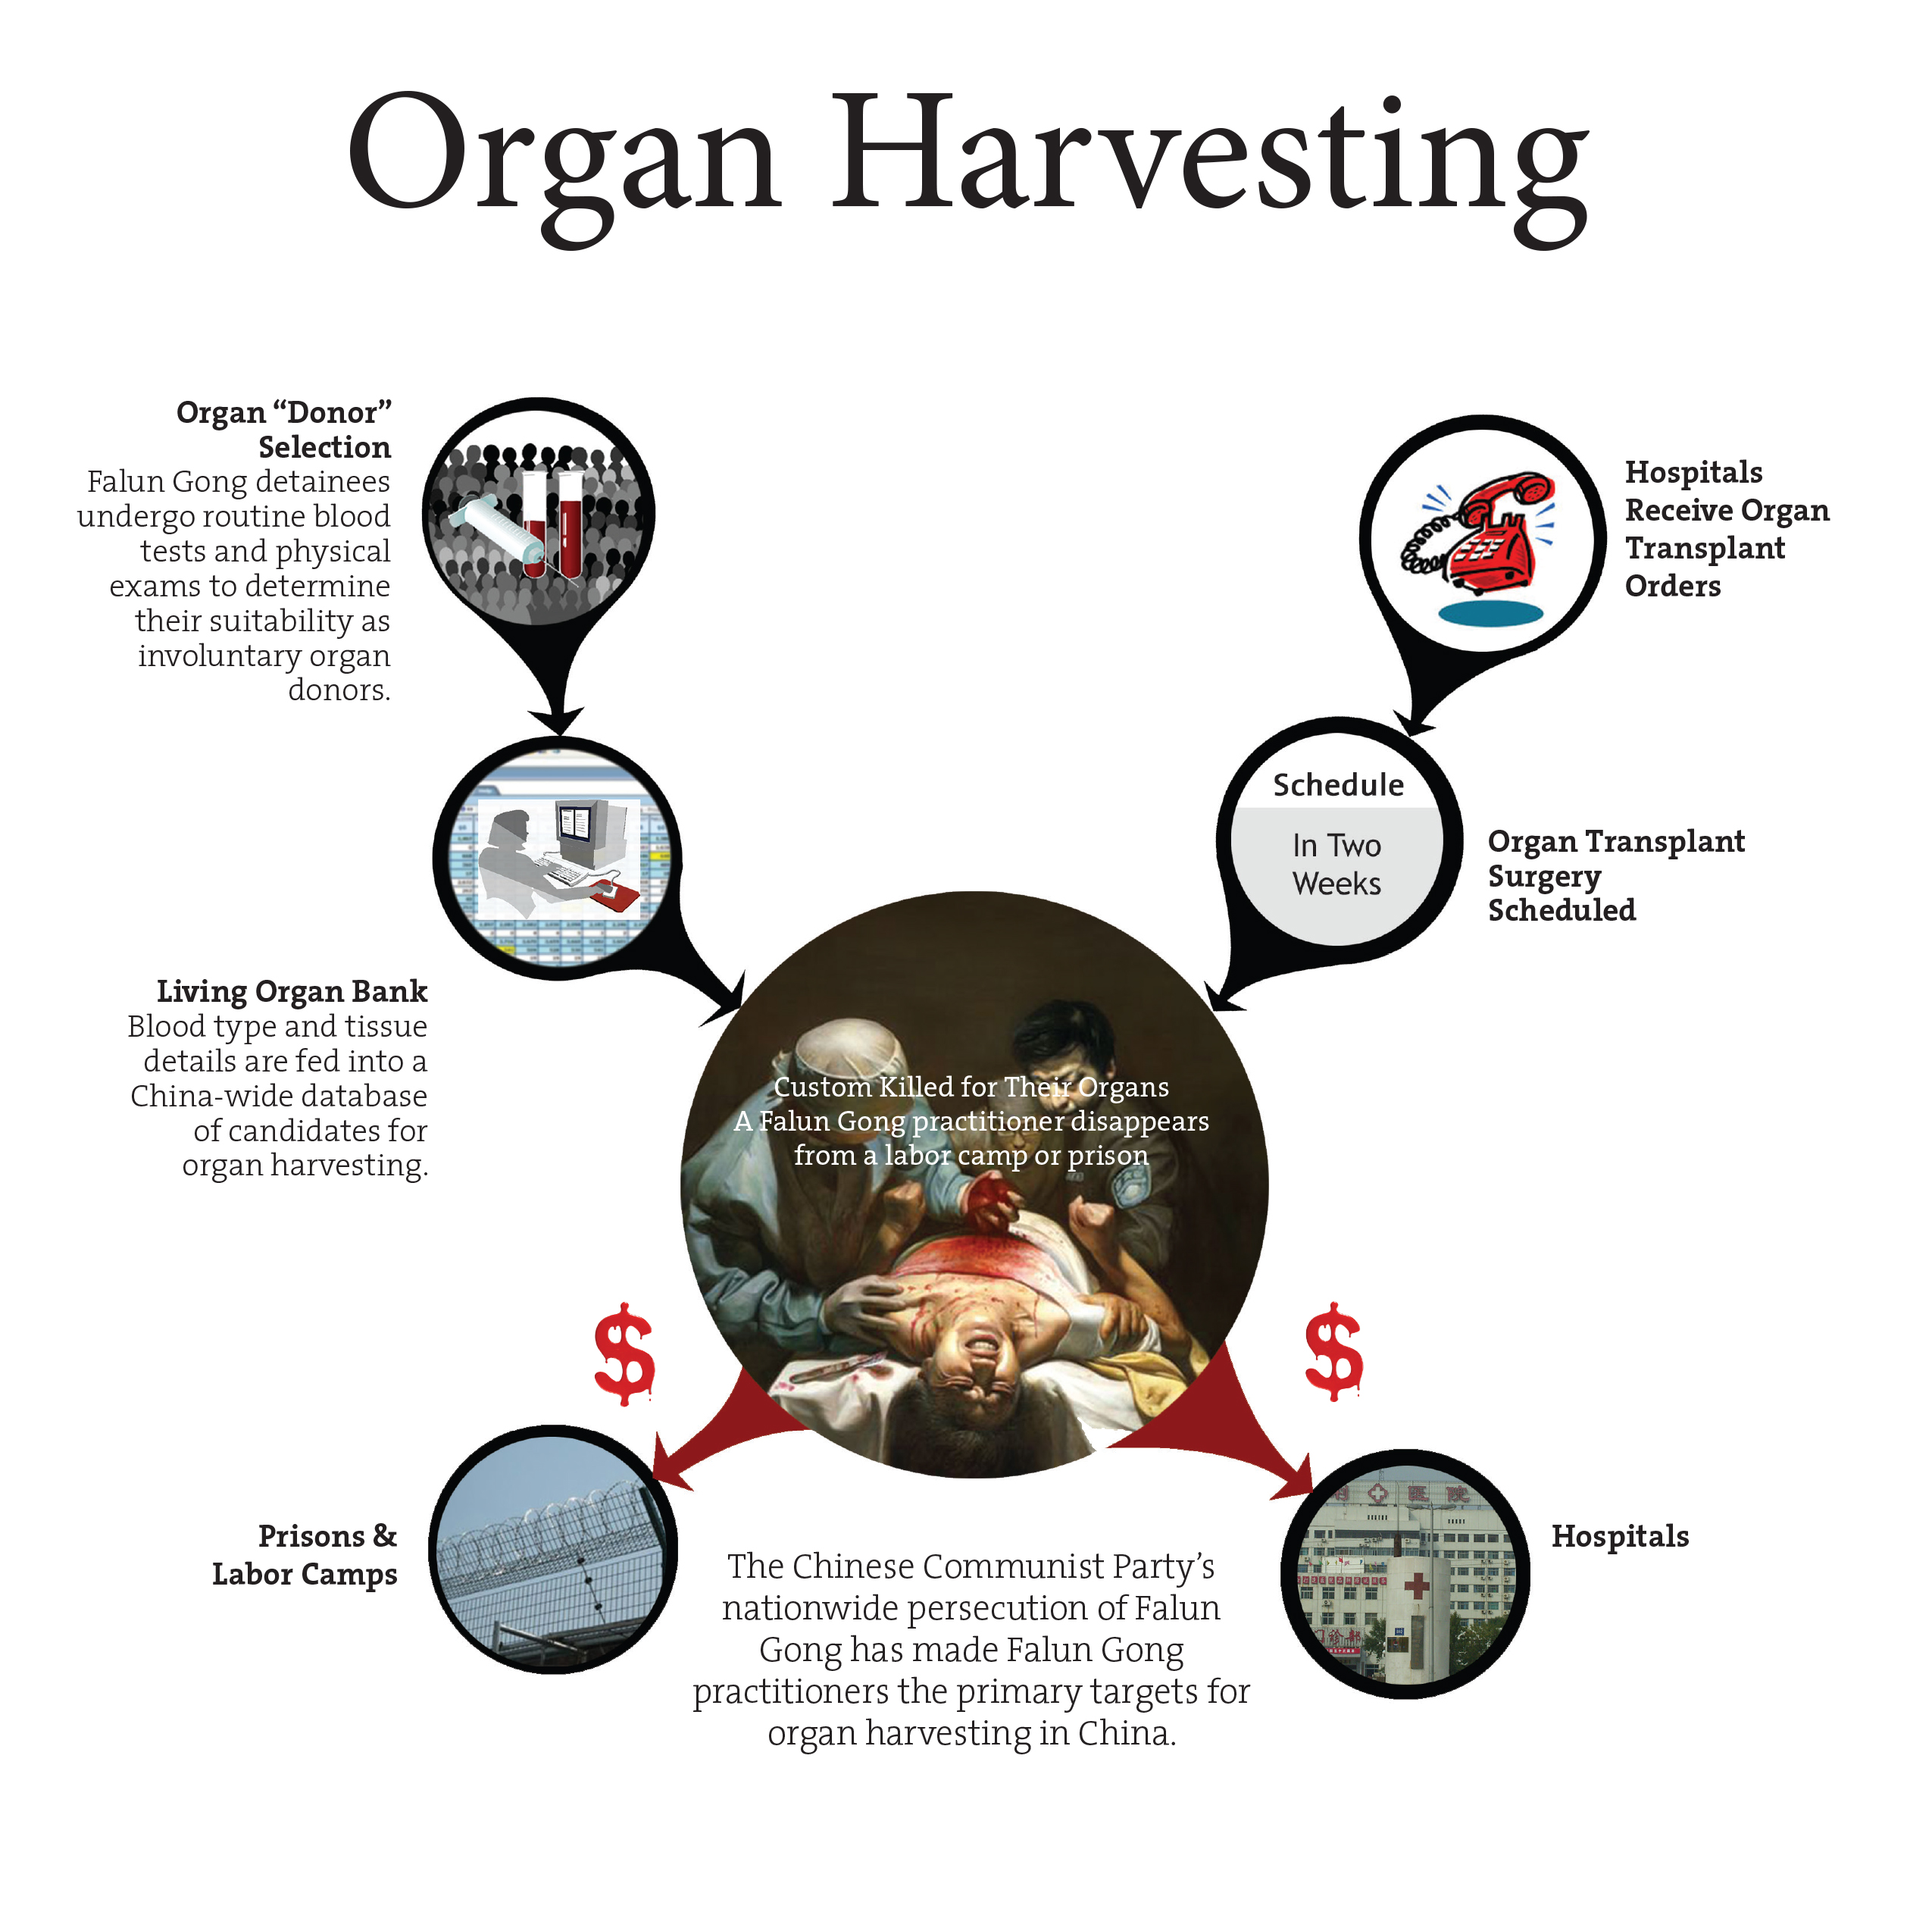 organ harvesting in china essay Essay contest 2018 podcast vib asia join our staff oct 14 oct 14 transplant tourists unwitting beneficiaries of prisoner  in china's organ-harvesting.